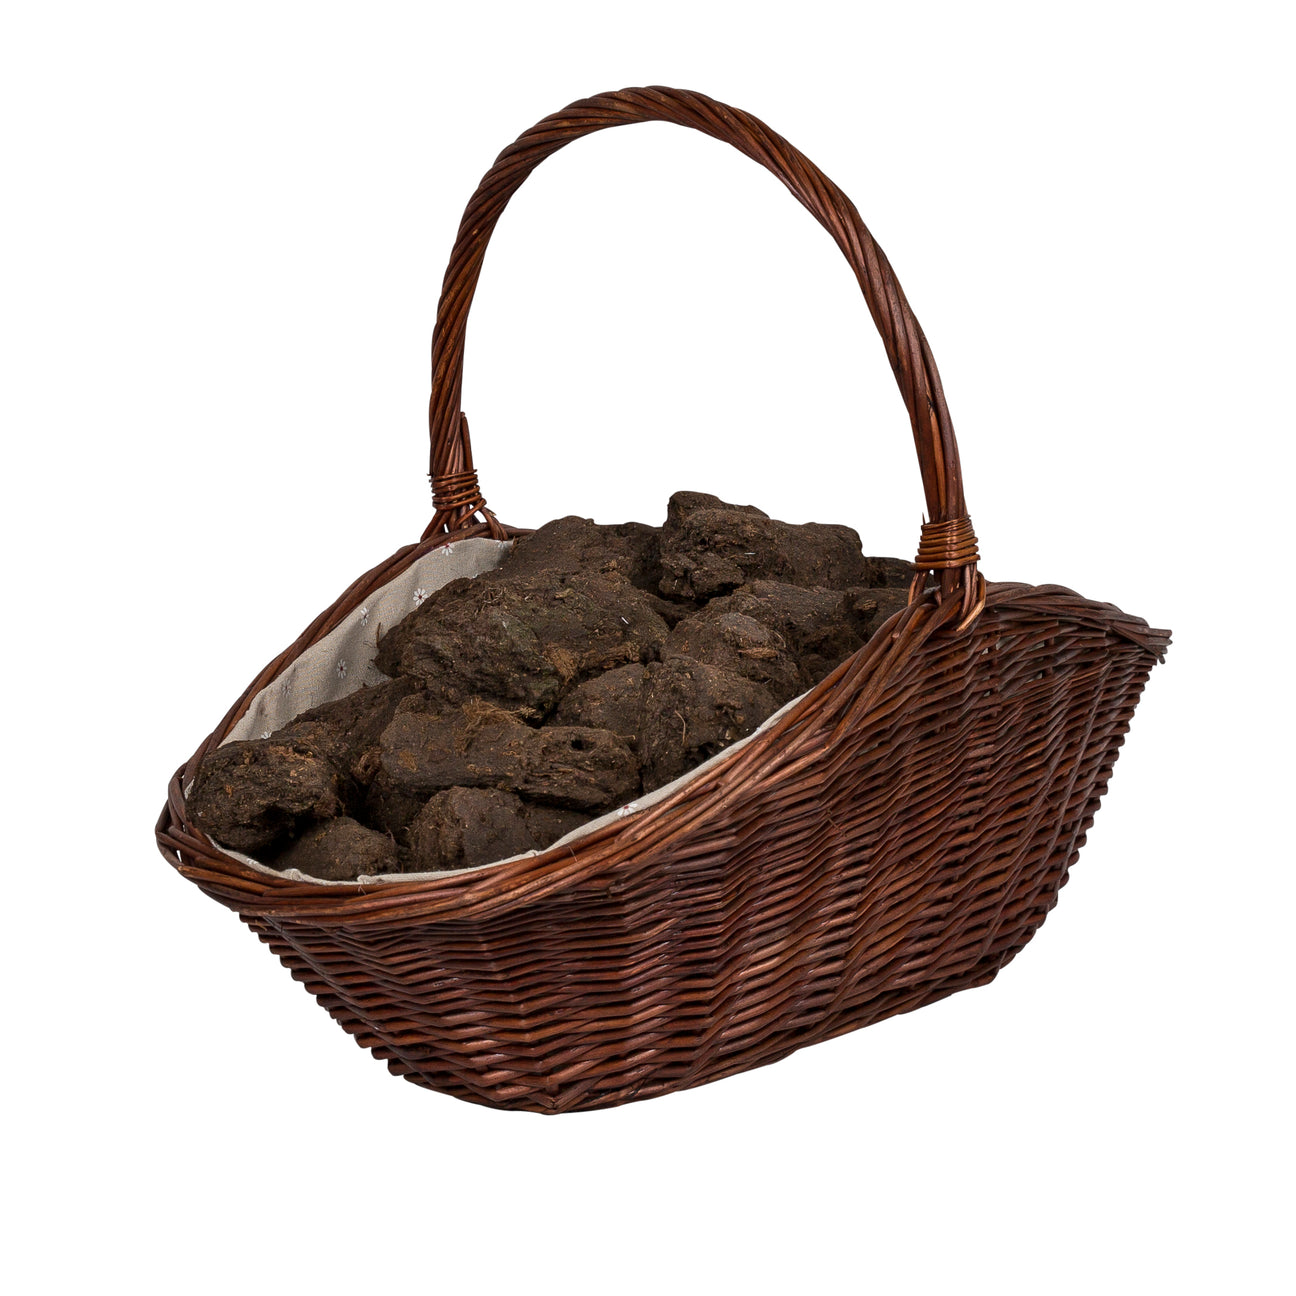 Image of Wicker basket holding turf peat briquettes